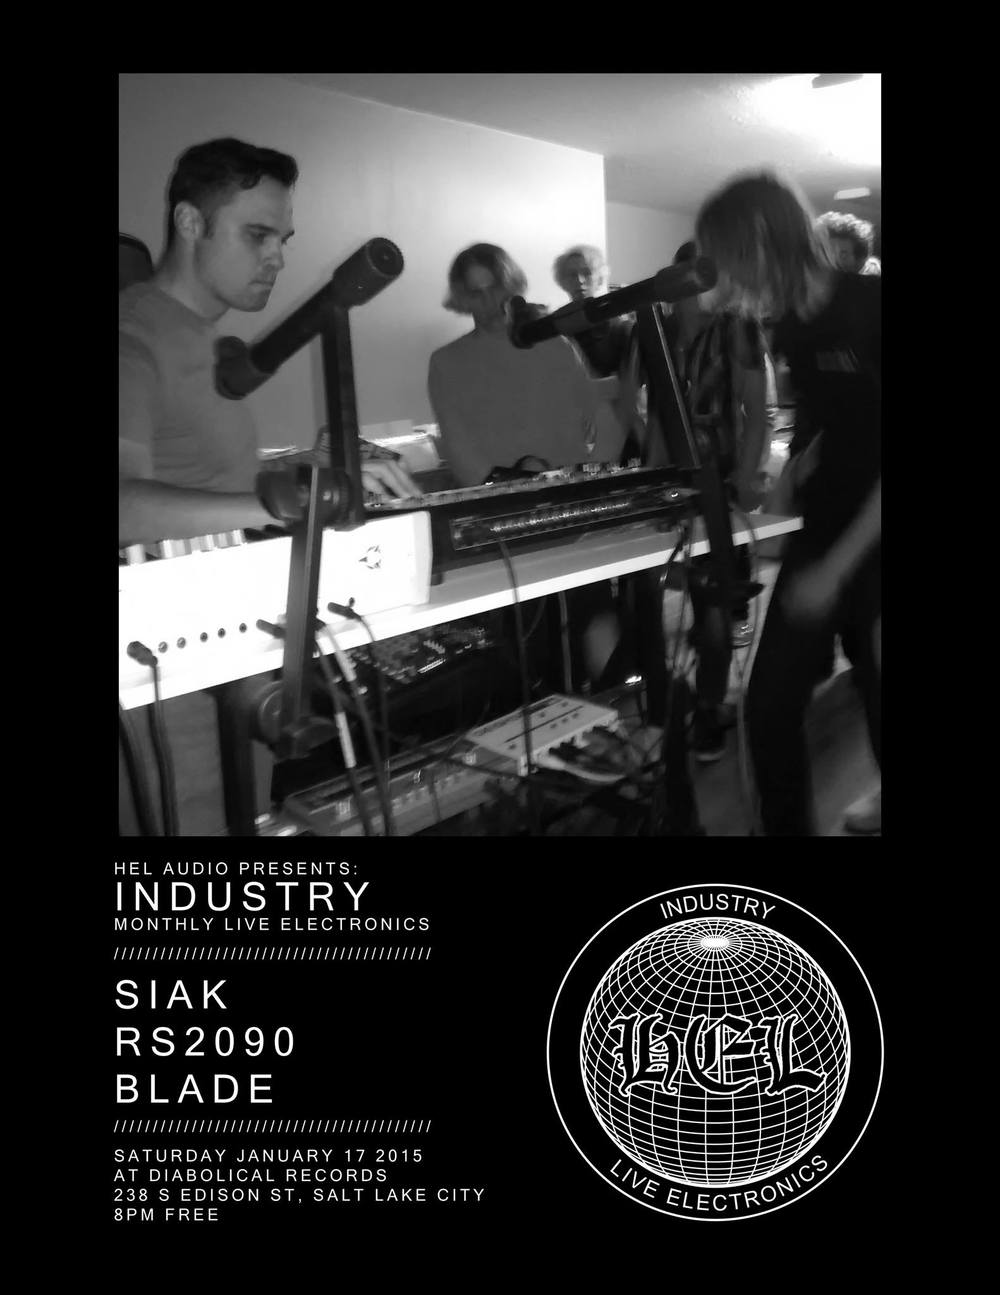 INDUSTRY  is Hel's first compilation, and an attempt to catalog and document the Utah experimental electronic scene as it stands in the year 2014. Collecting tracks from Hel regulars (OK Ikumi, RS2090, Mooninite), scene veterans (Siak, Cerci), and newcomers (Vistaas, Jordan Swain, MONOL!TH) in various electronic styles; from the electro and techno sounds the scene was formed around to the abstract splinterings of the modern soundscape.